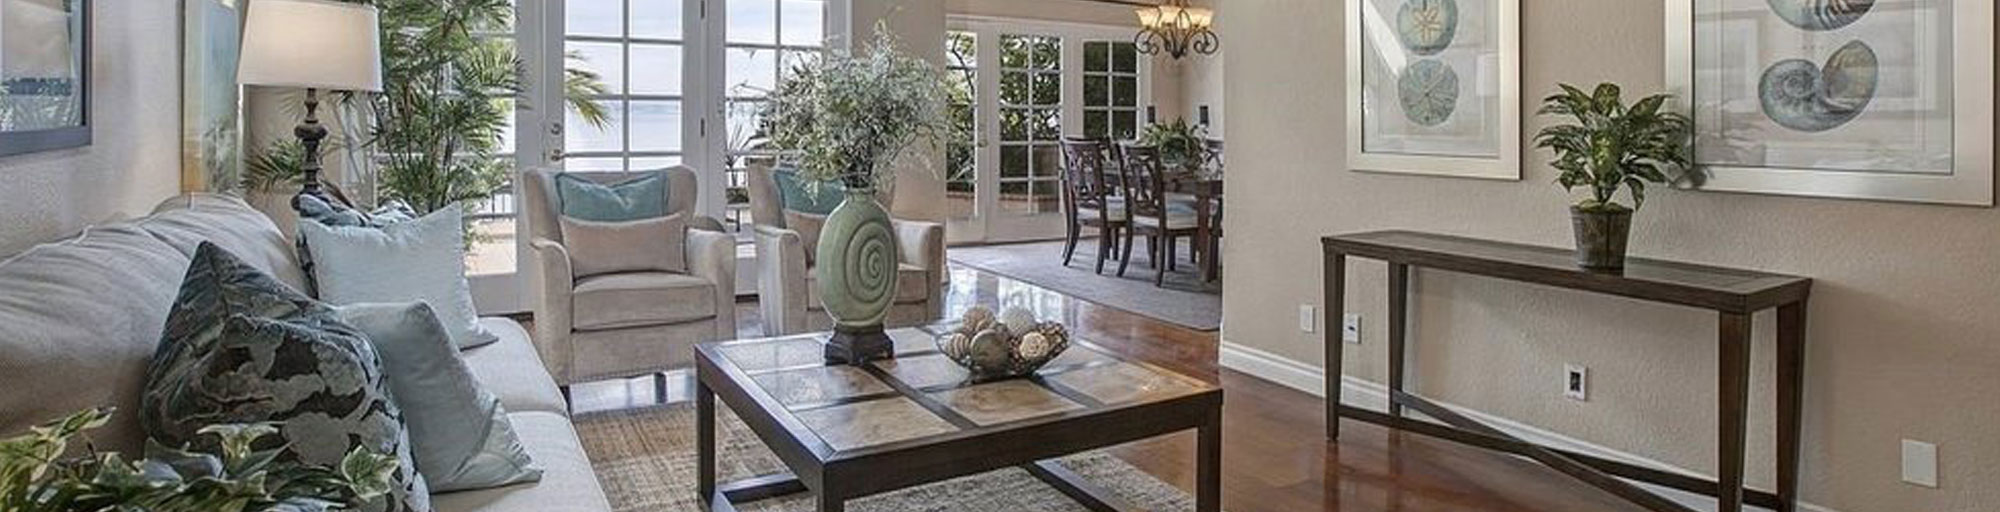 Full service home staging company